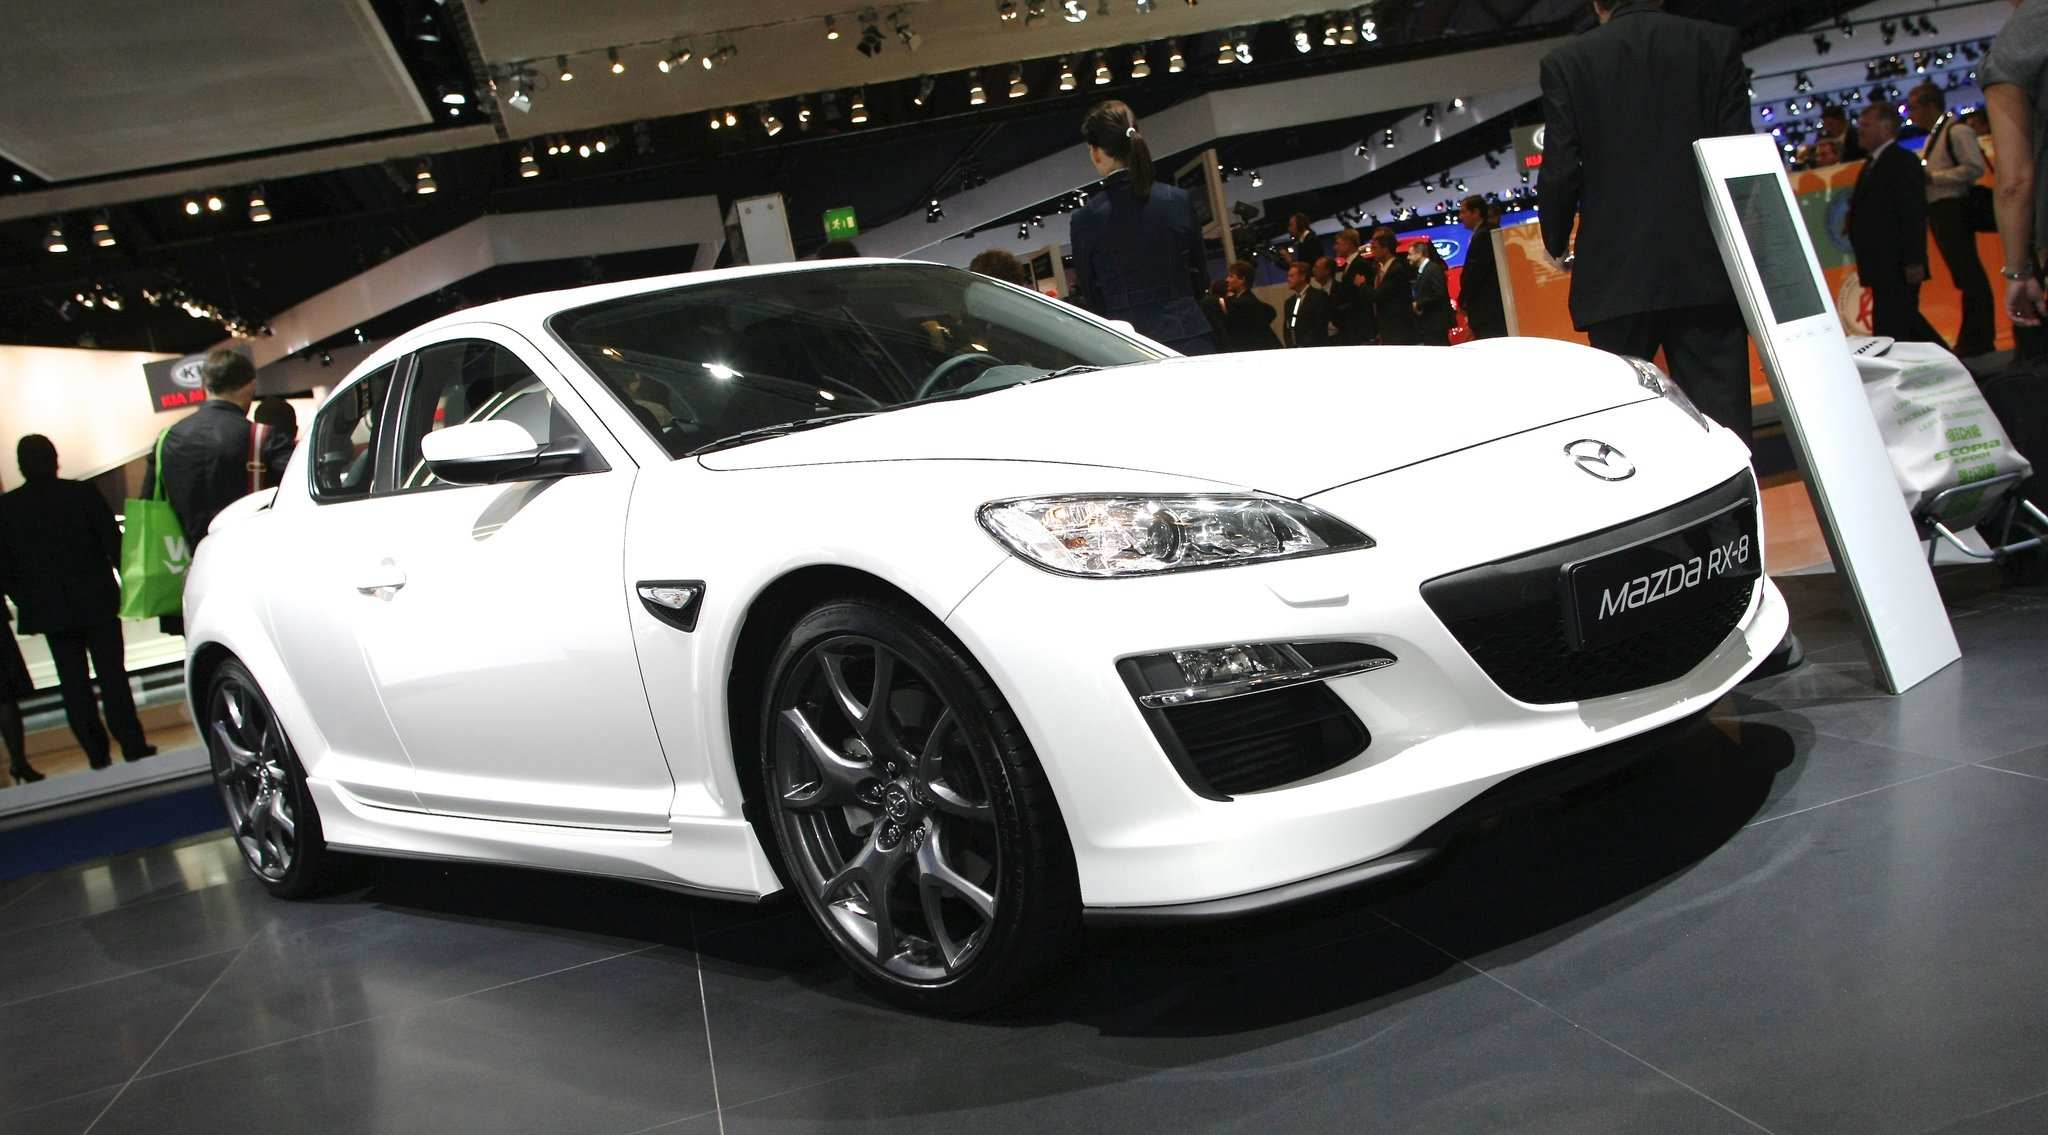 87 A Mazda Wankelmotor 2020 Price And Release Date